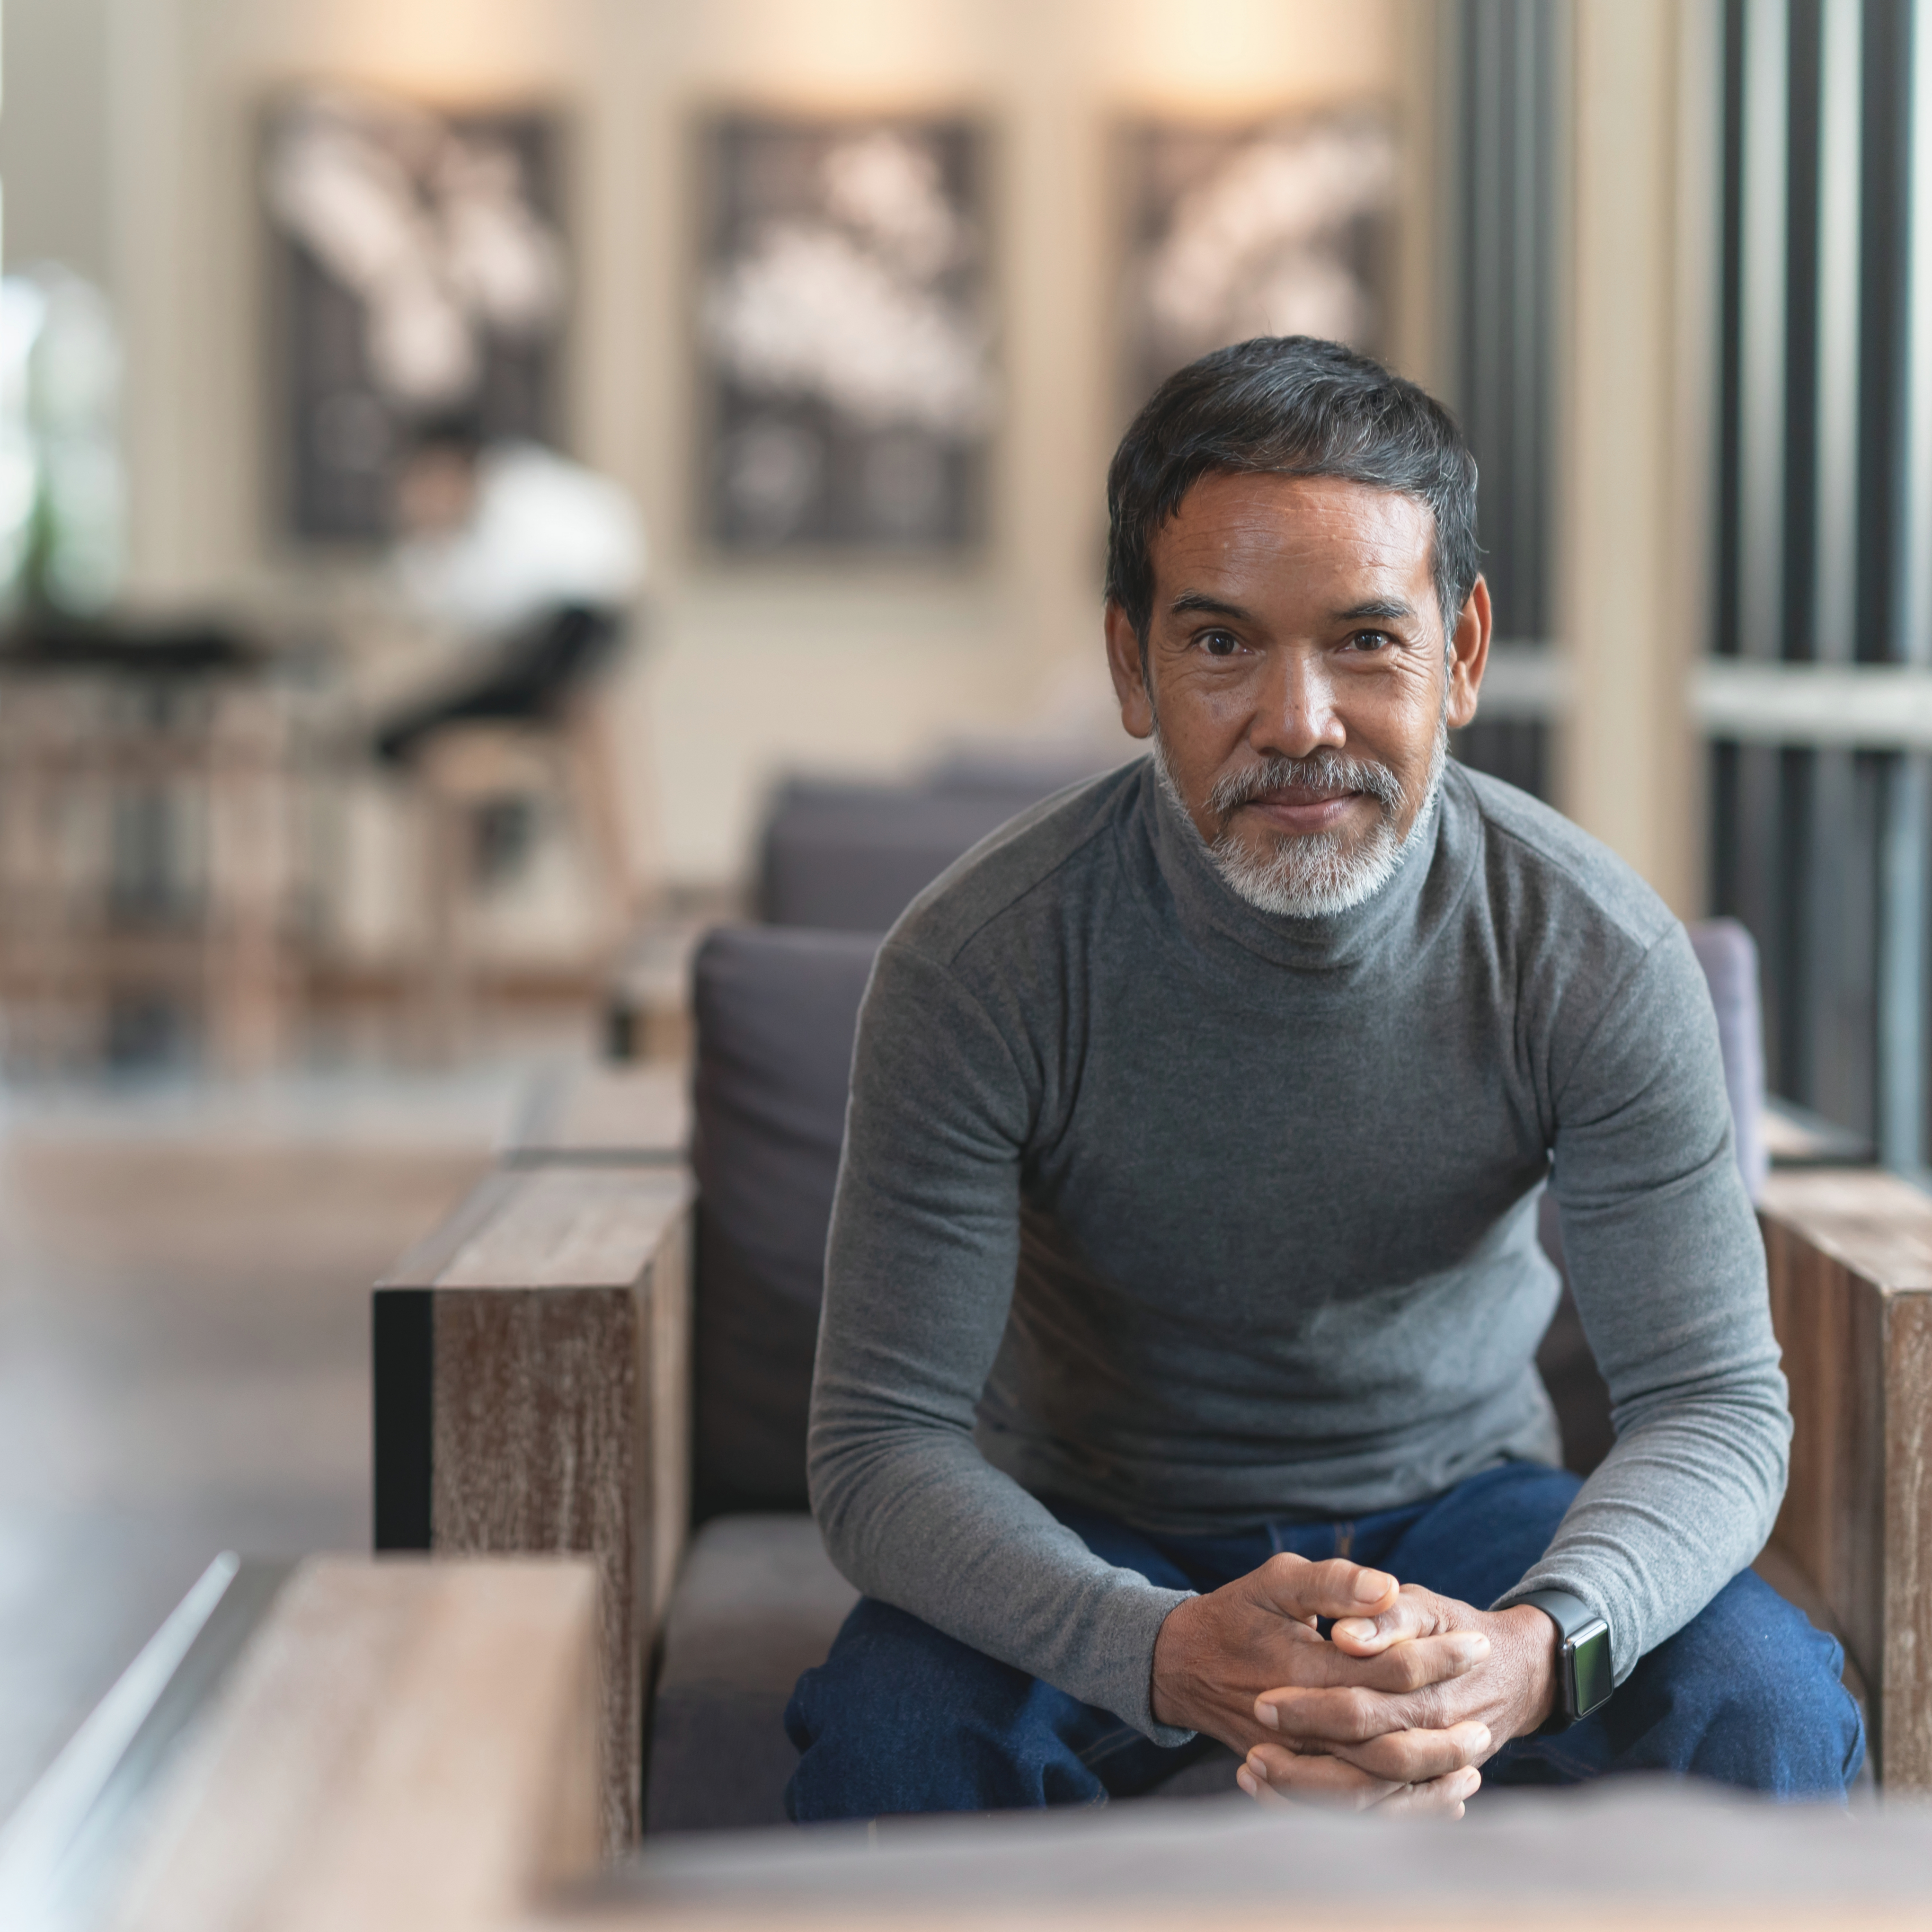 Portrait of mature man with confident smile and white stylish short beard looking at camera sitting in modern coffee shop.